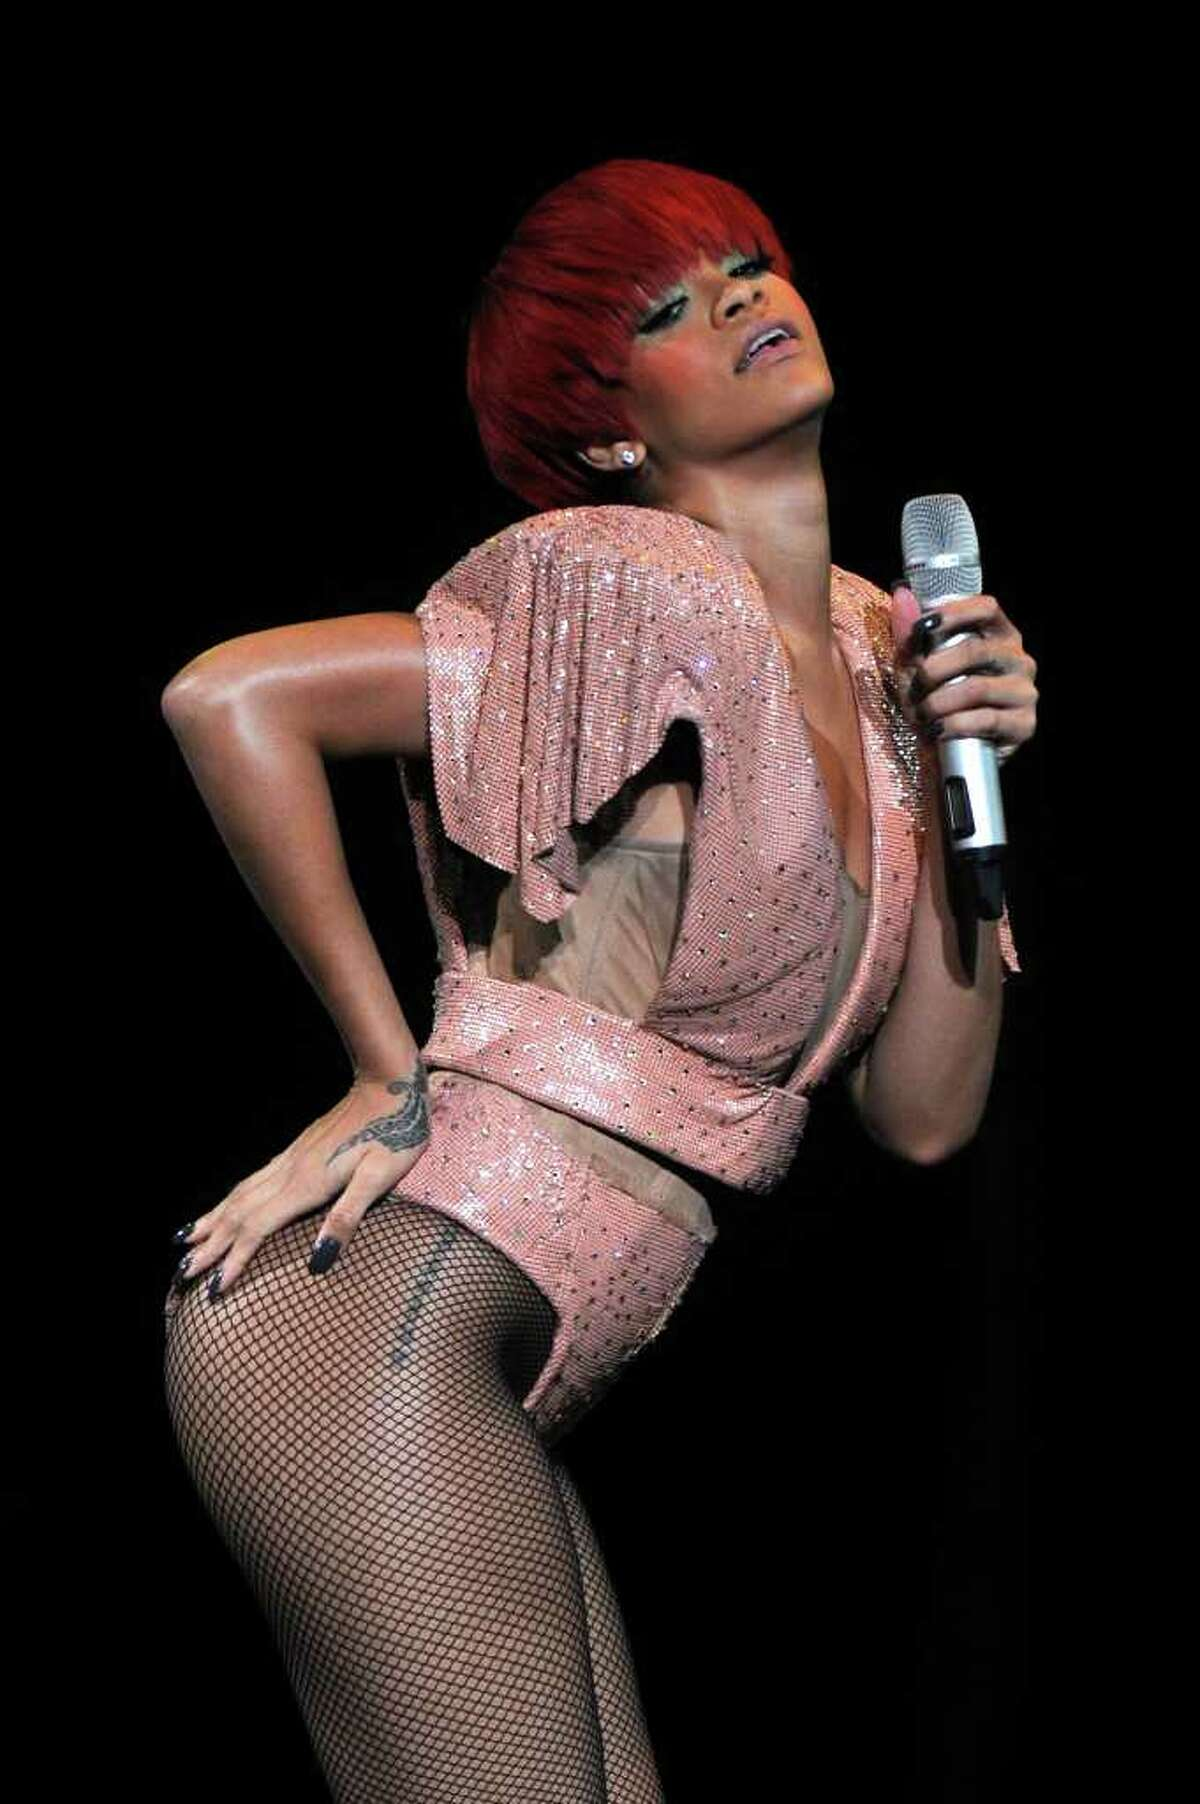 NEW YORK - AUGUST 12: Singer Rihanna performs at Madison Square Garden on August 12, 2010 in New York City. (Photo by Bryan Bedder/Getty Images) *** Local Caption *** Rihanna